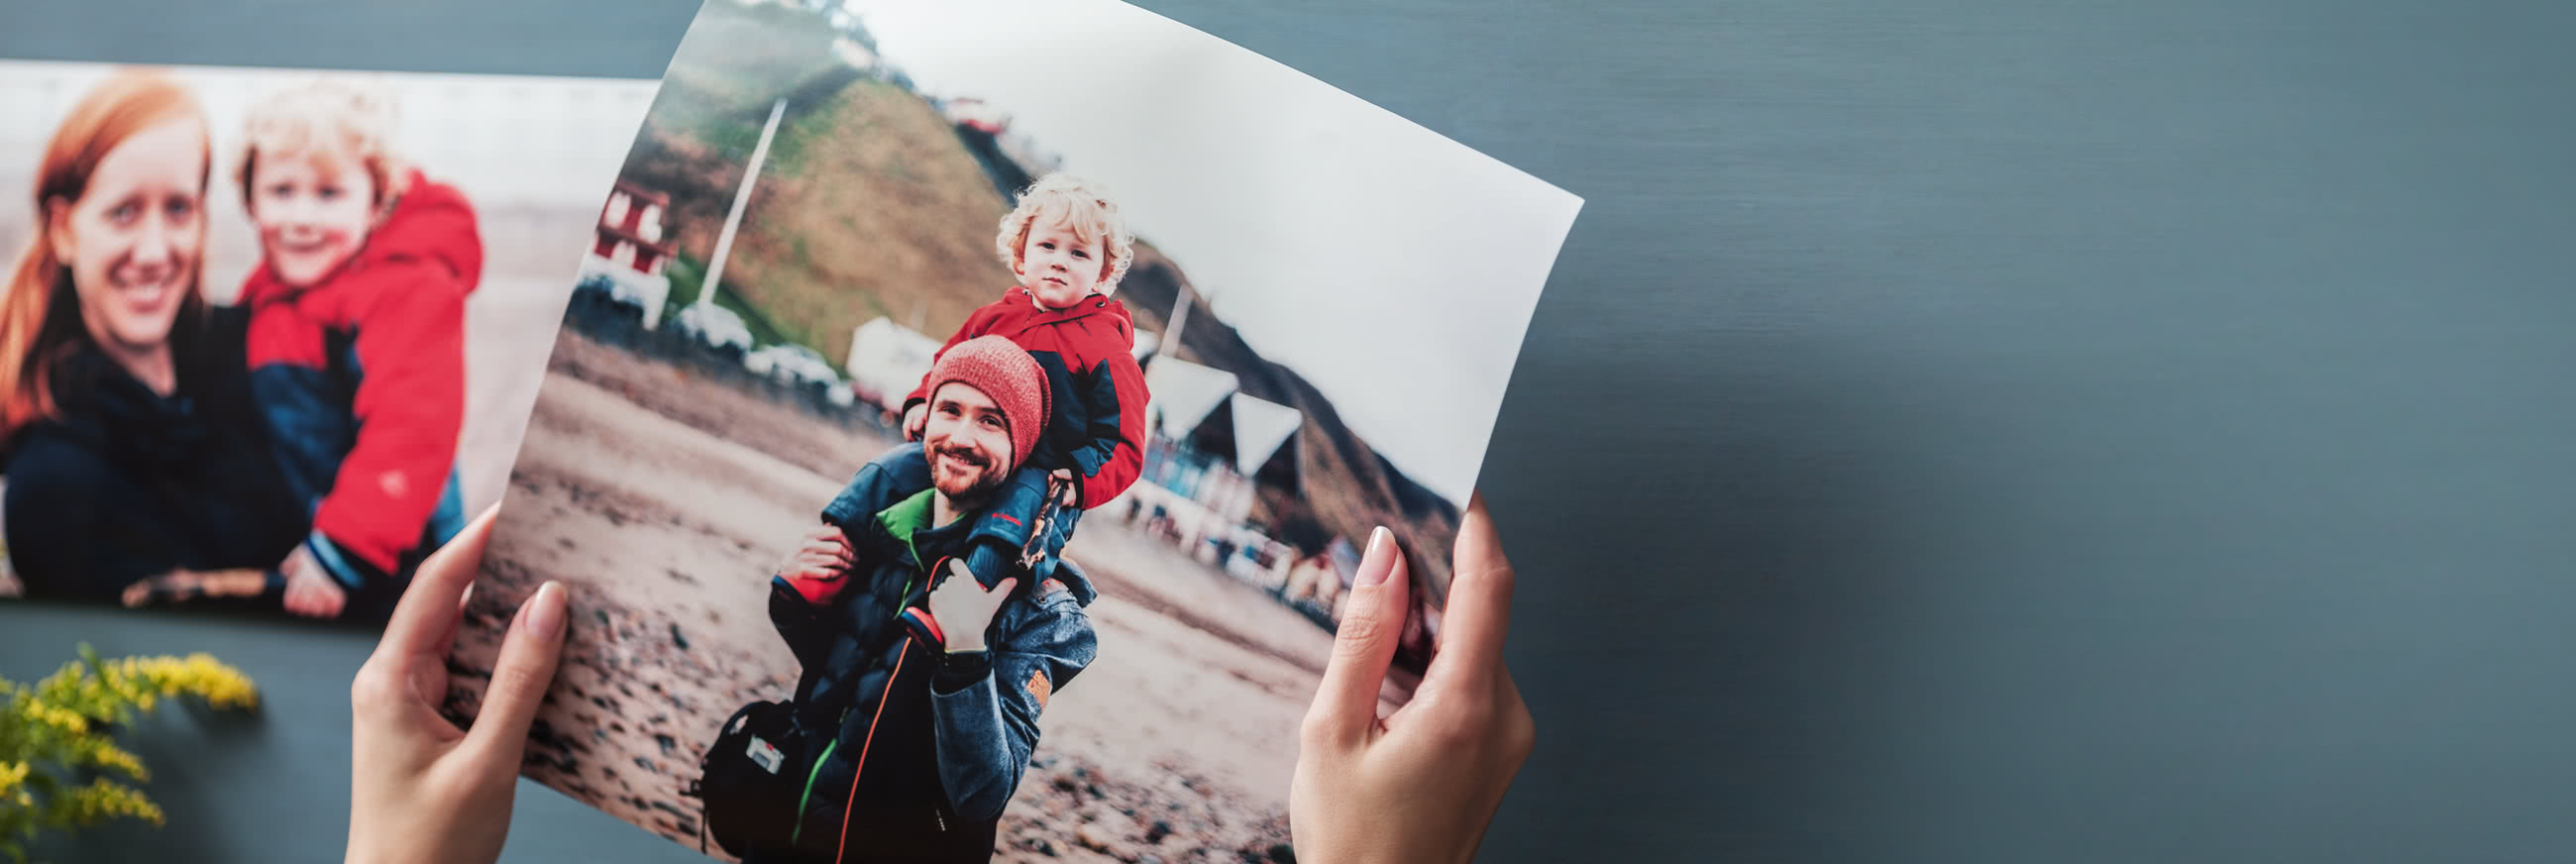 Print photos online any size 5 Elements of Composition in Photography